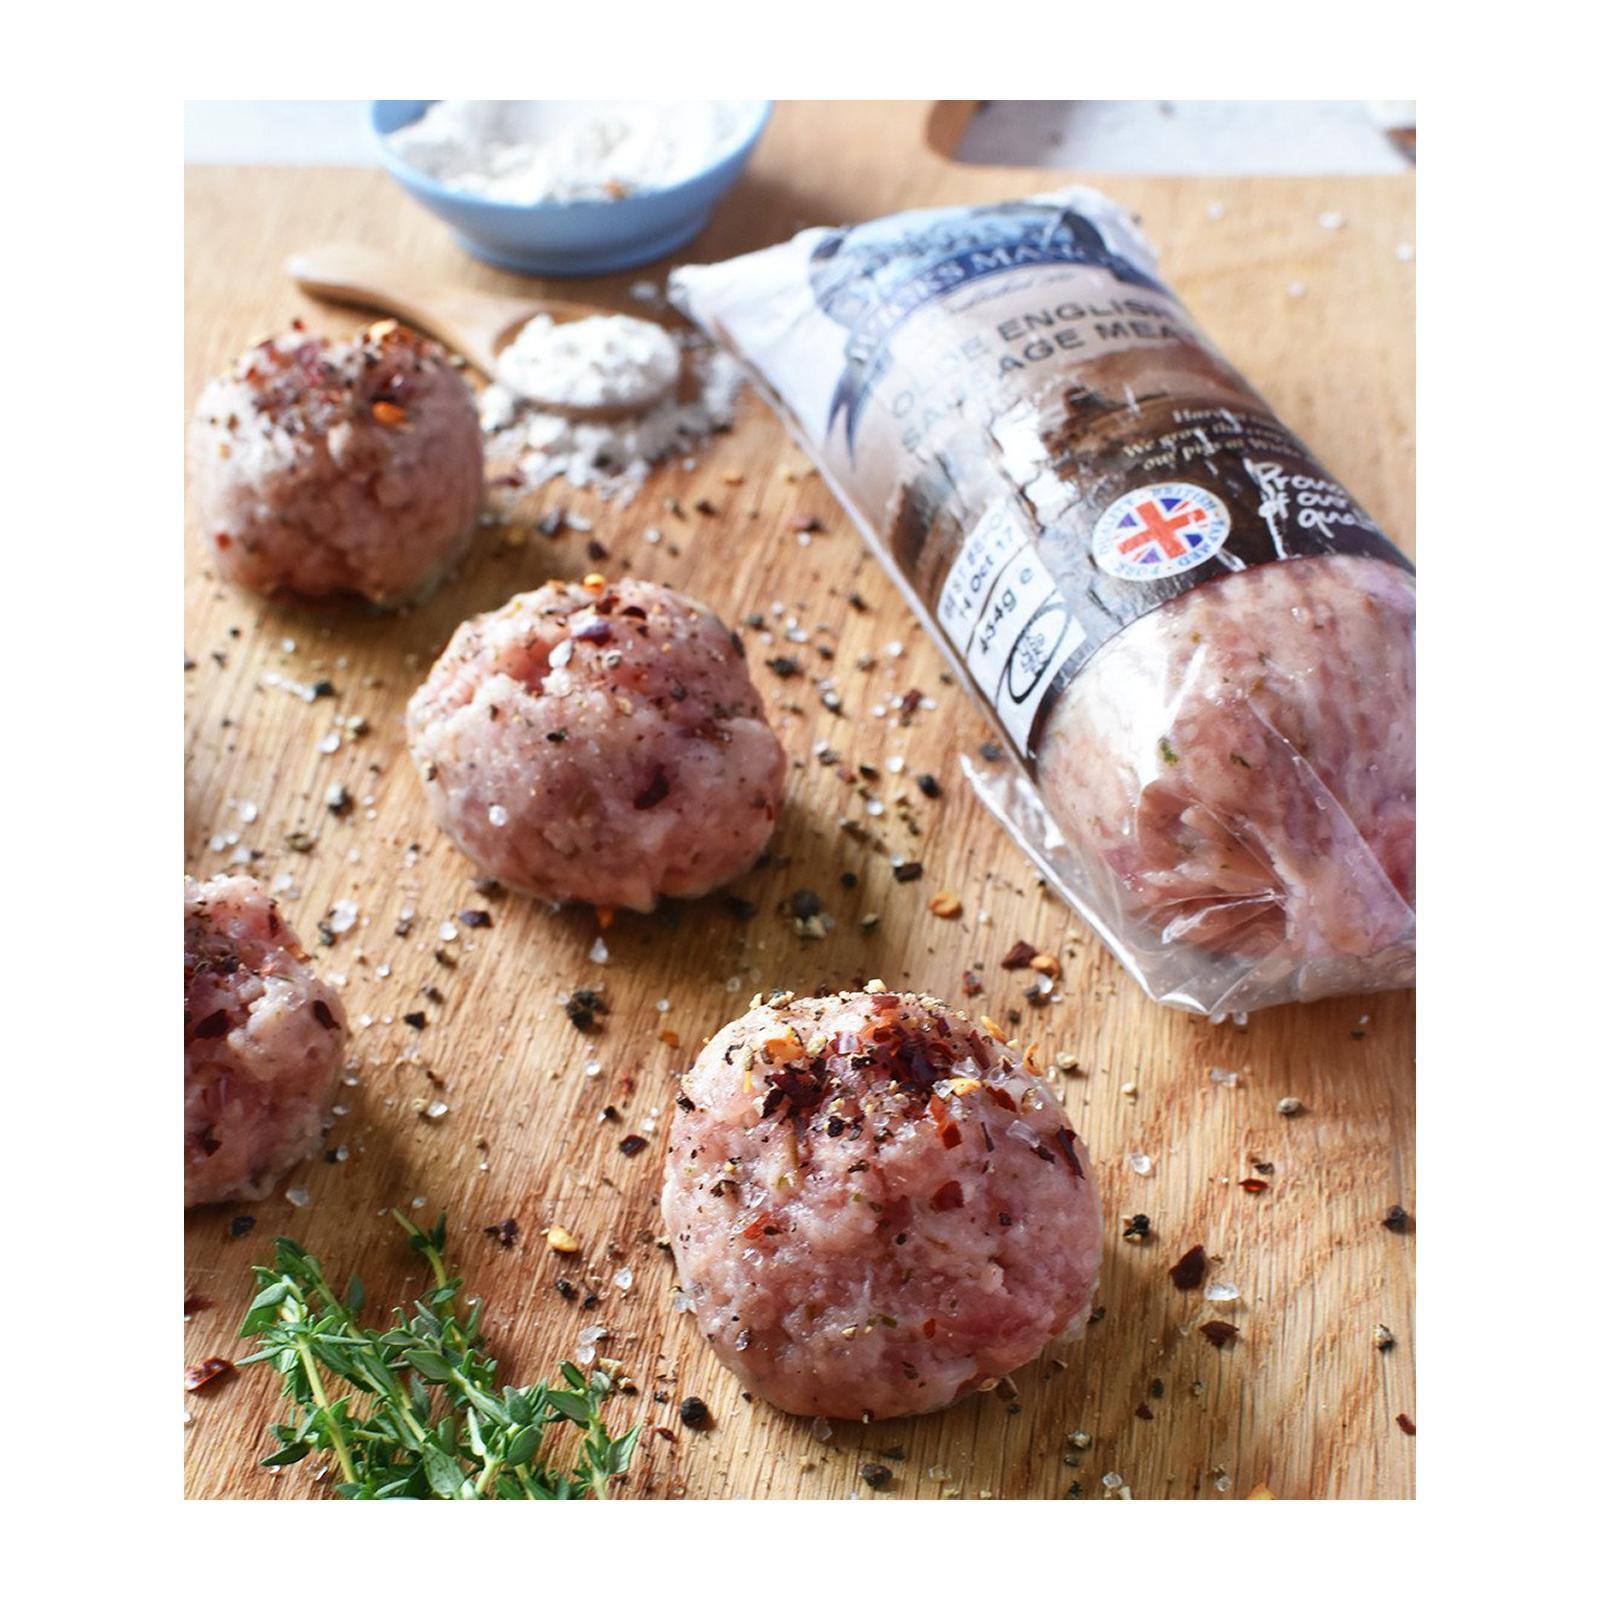 Sasha's Fine Foods Olde English Sausages Meat - Frozen